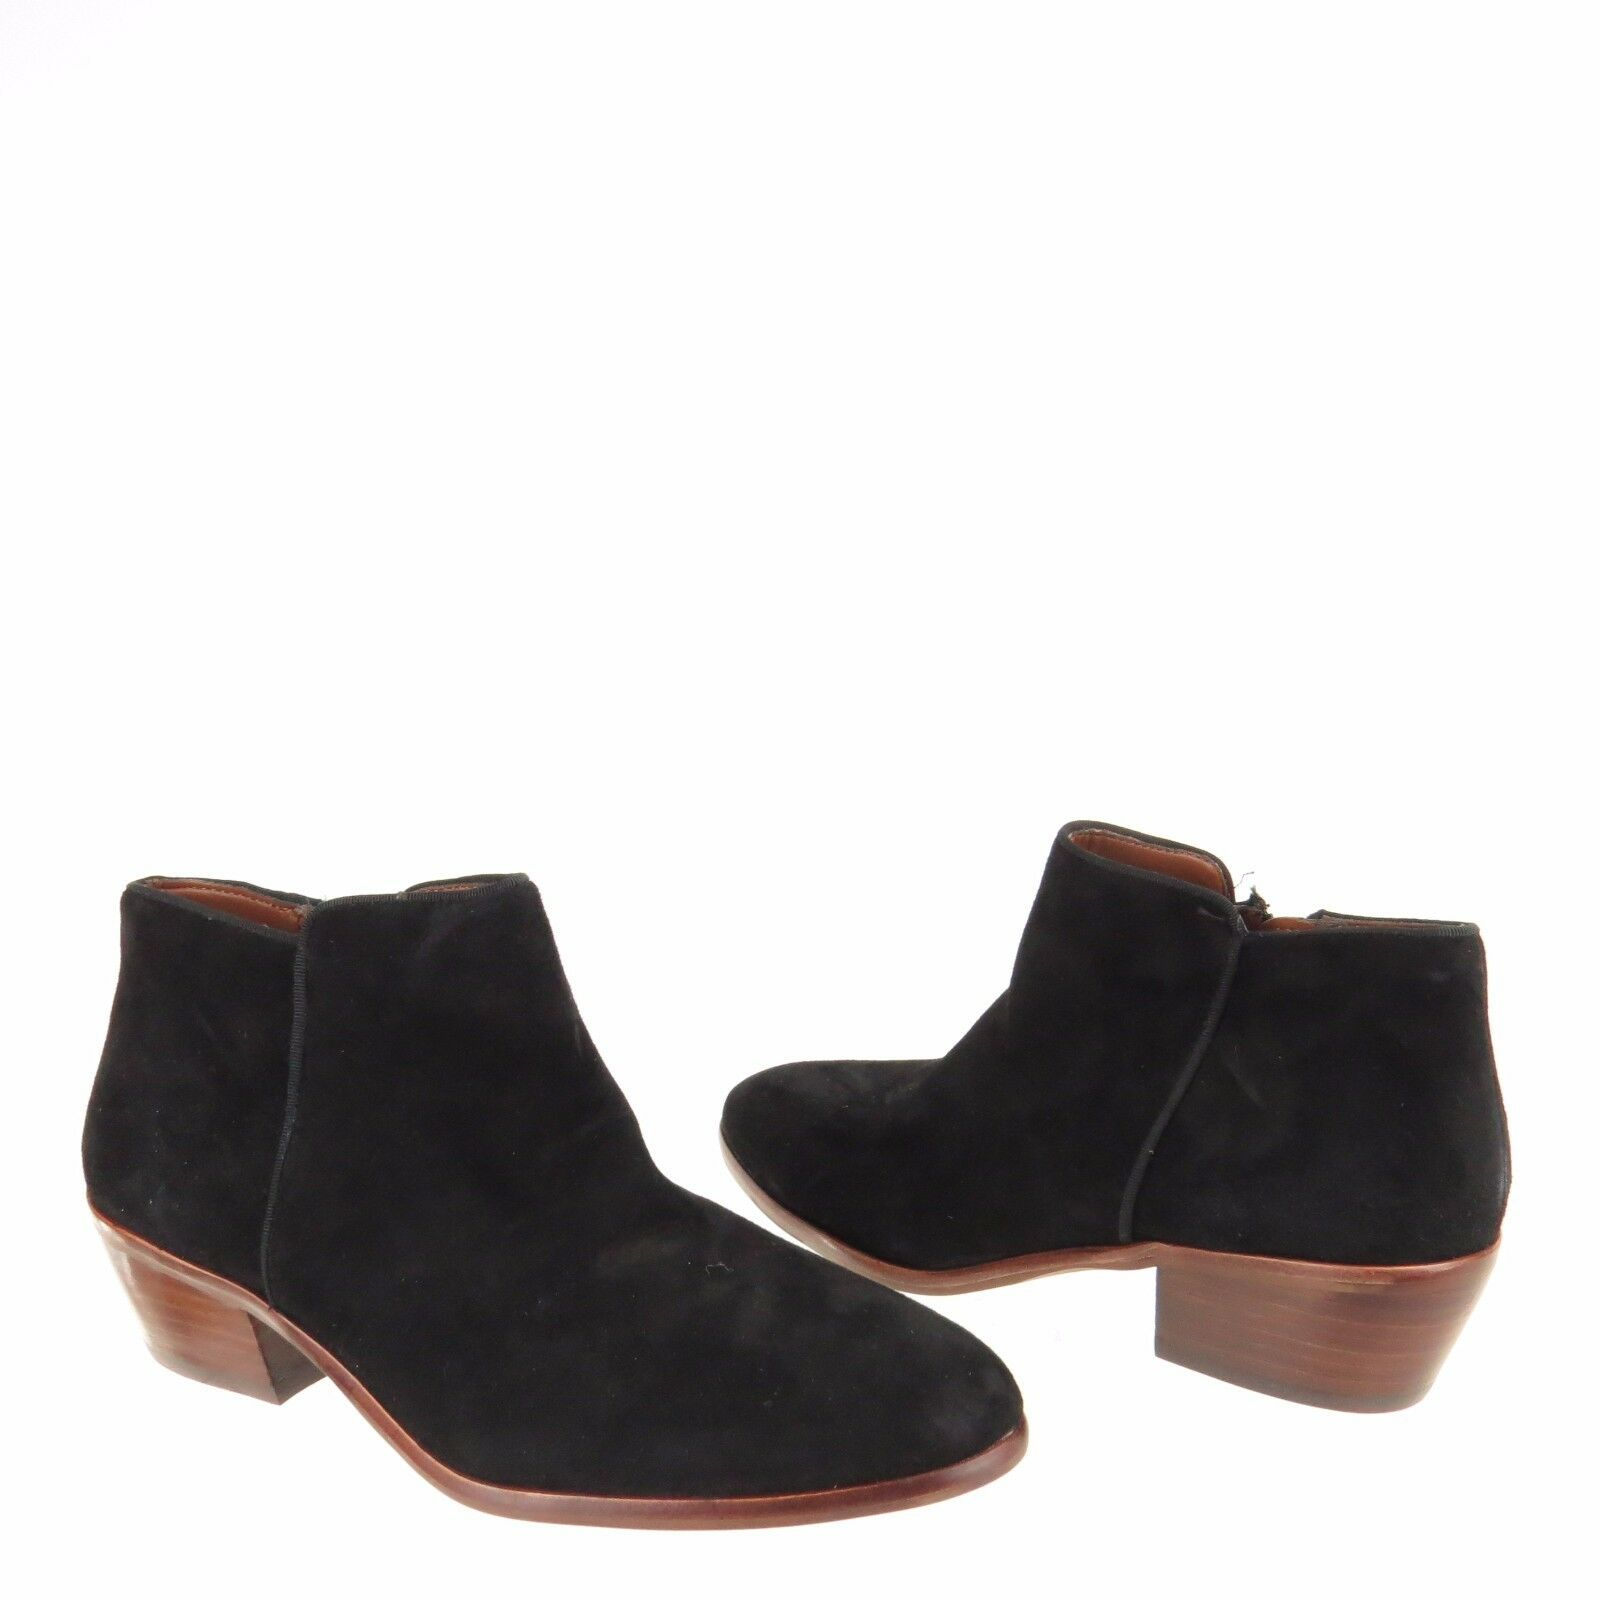 Women's Sam Edelman Betty Betty Betty shoes Black Suede Ankle Booties Size 7.5 W NEW 260b1f